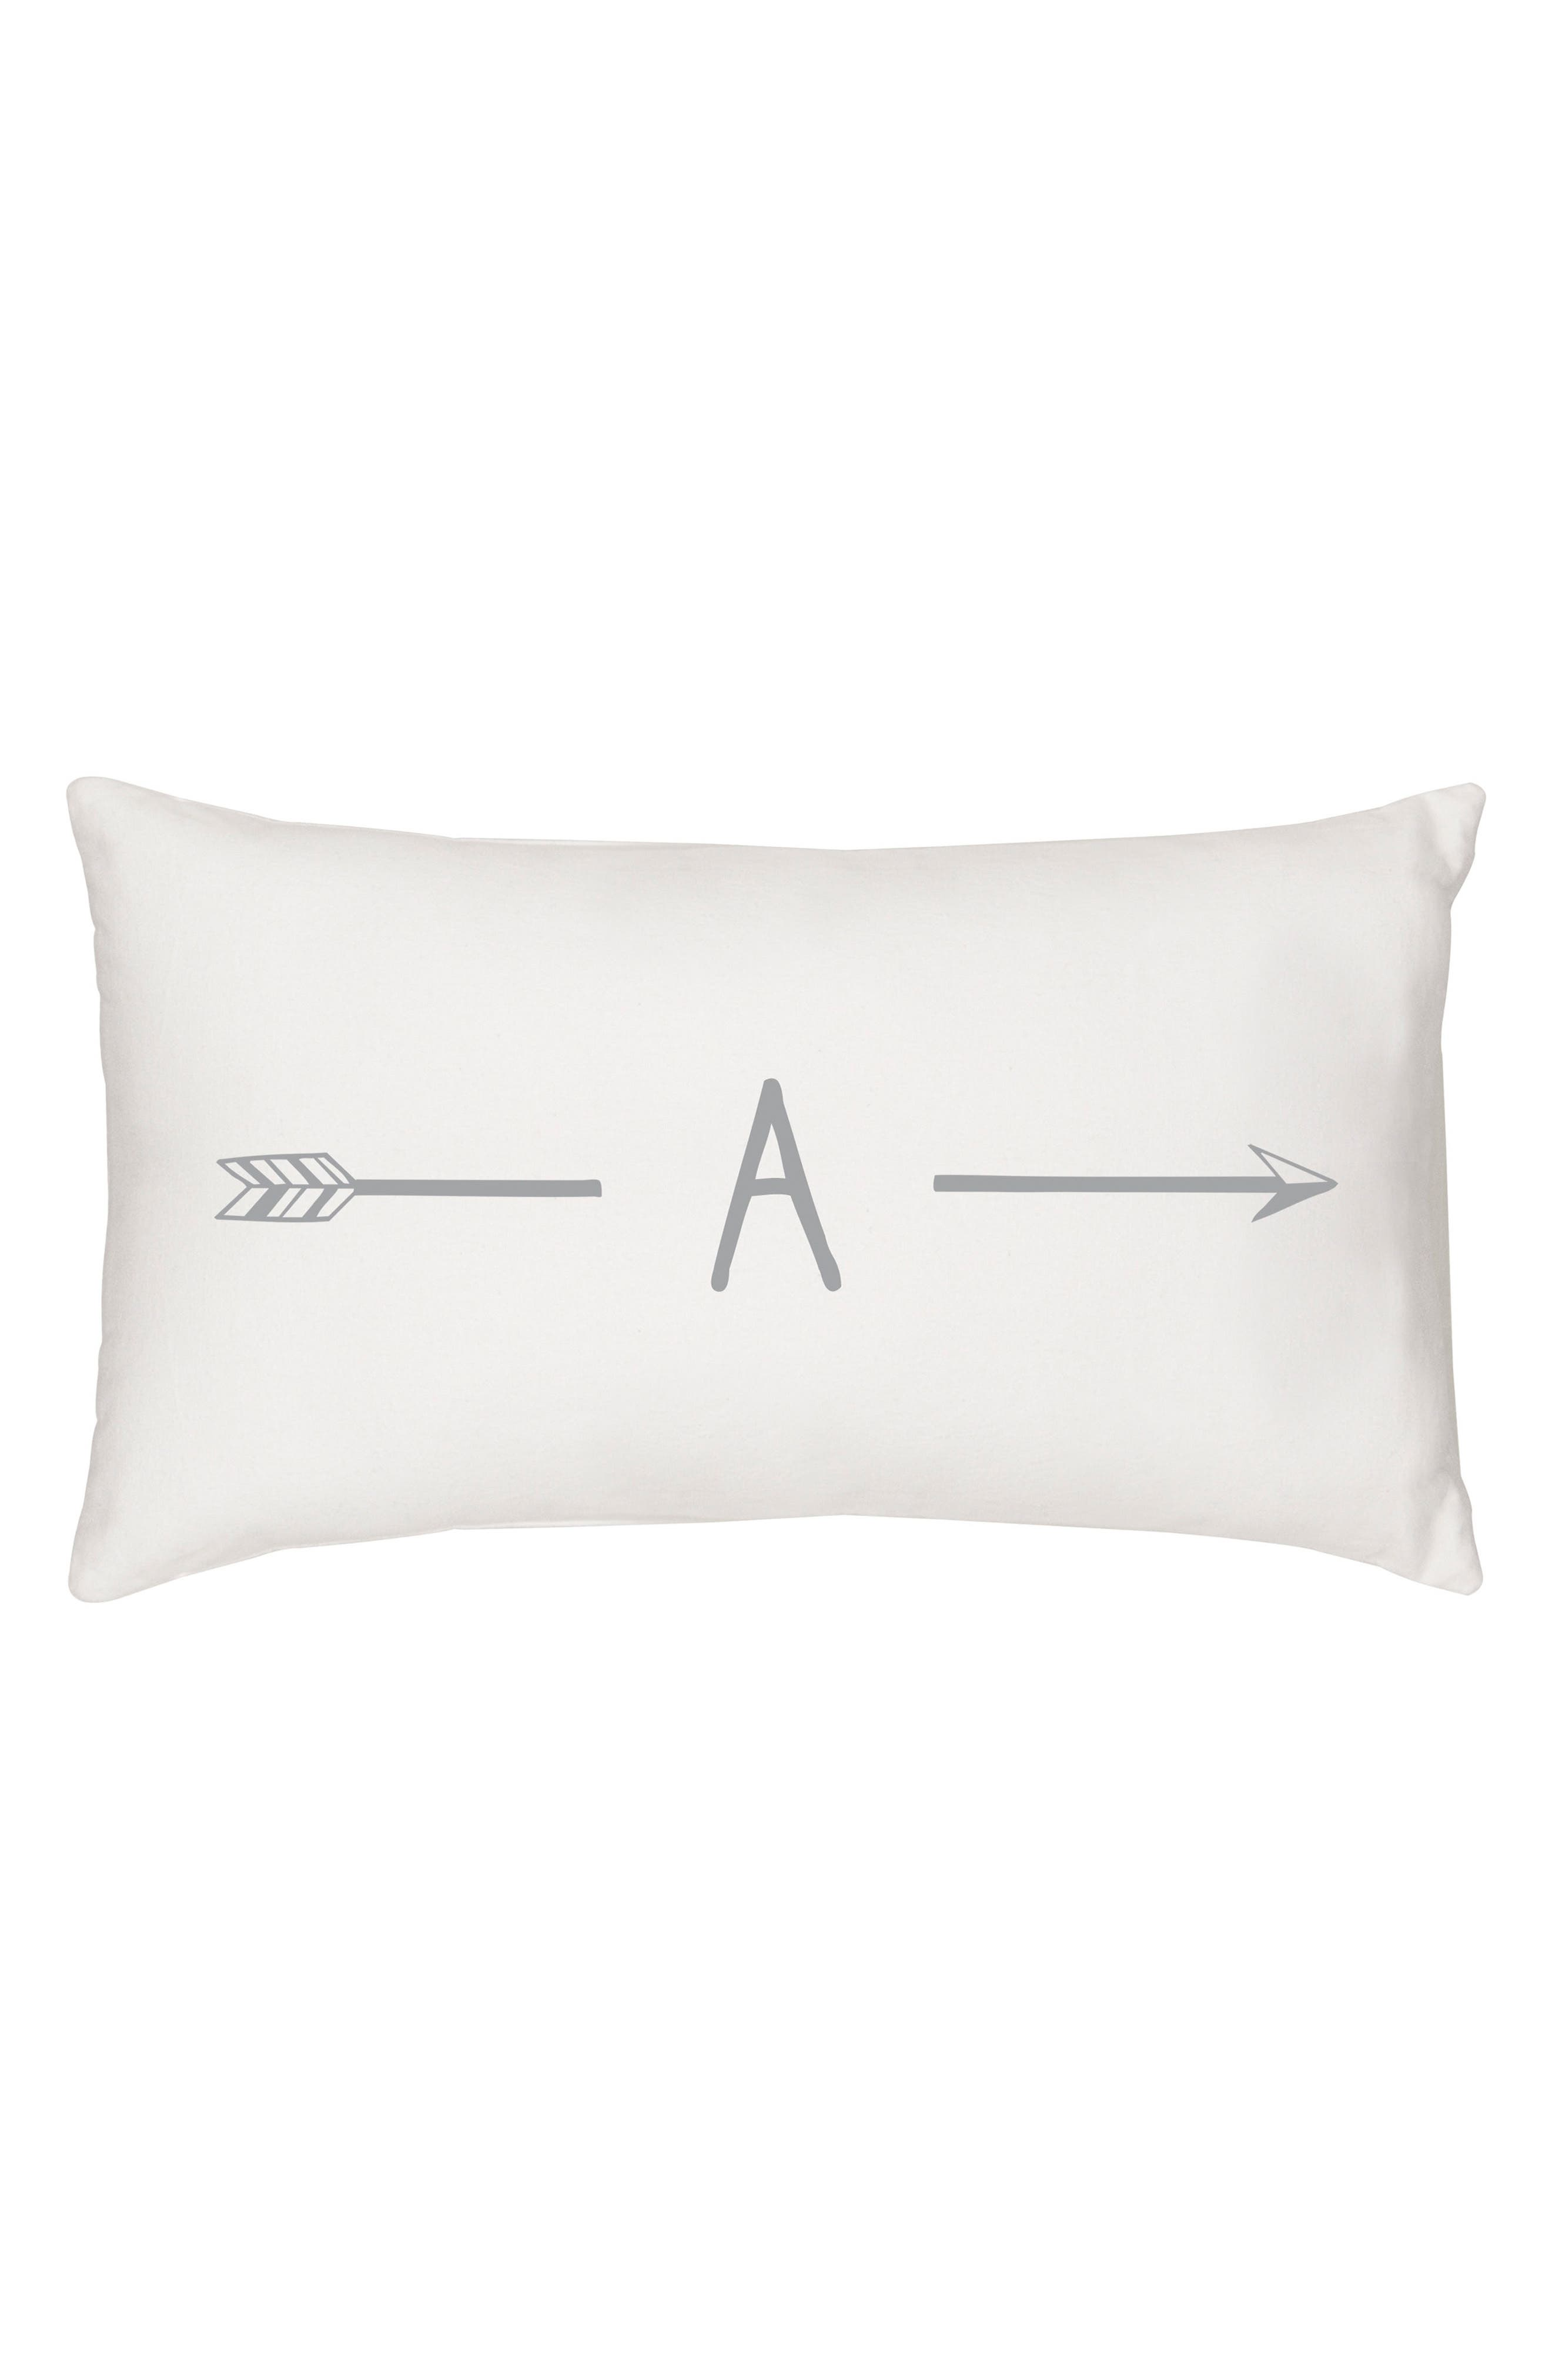 Monogram Lumbar Accent Pillow,                             Main thumbnail 1, color,                             020